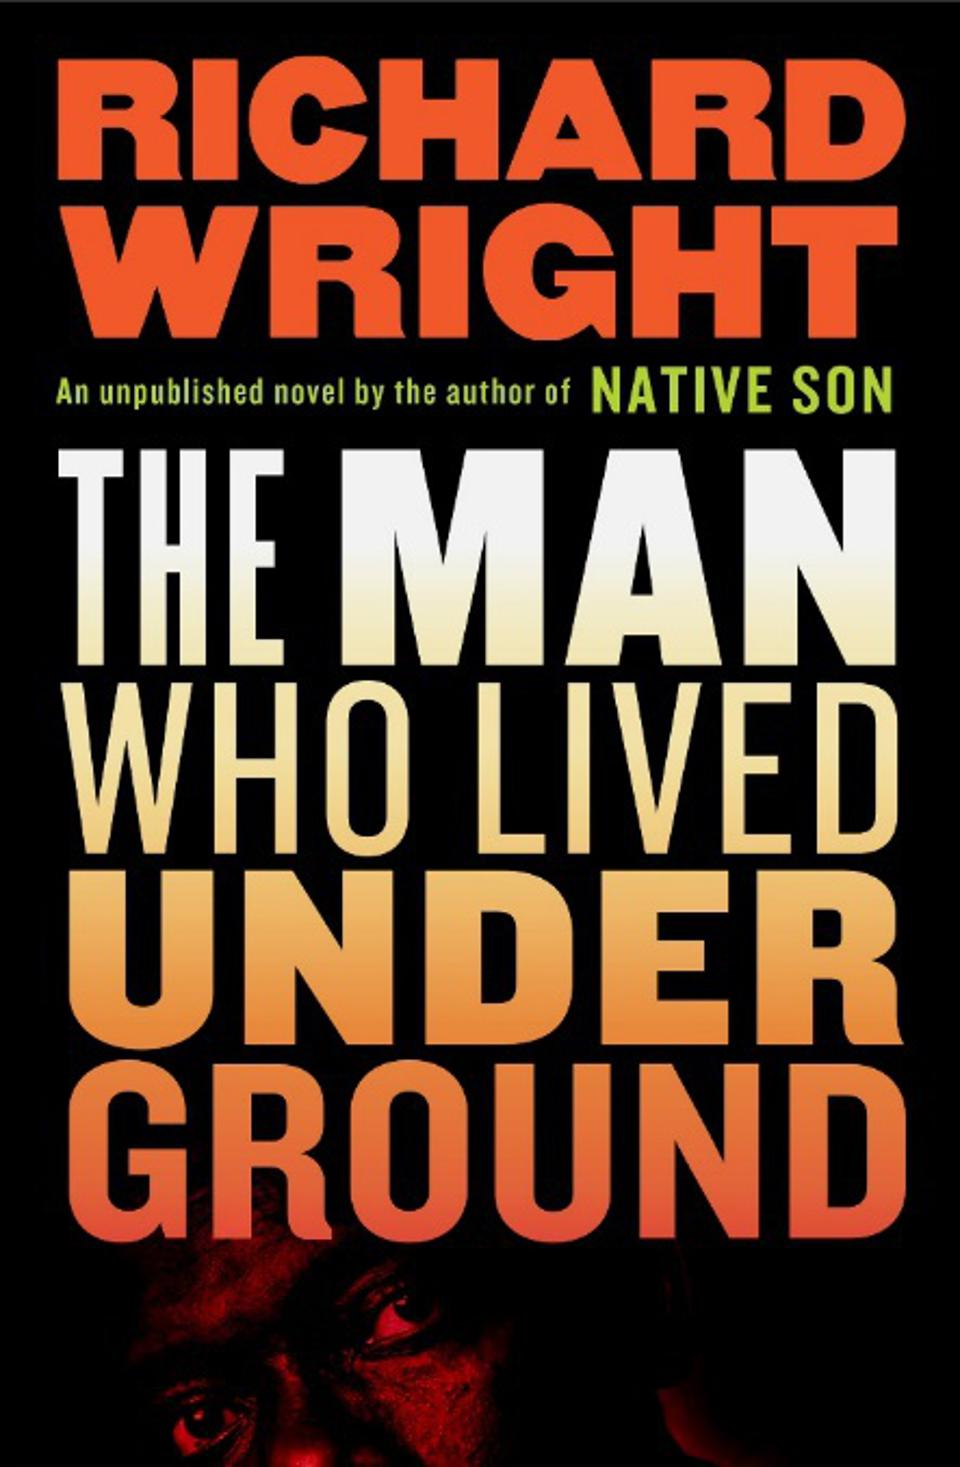 richard wright the man who lived underground novel book cover native son